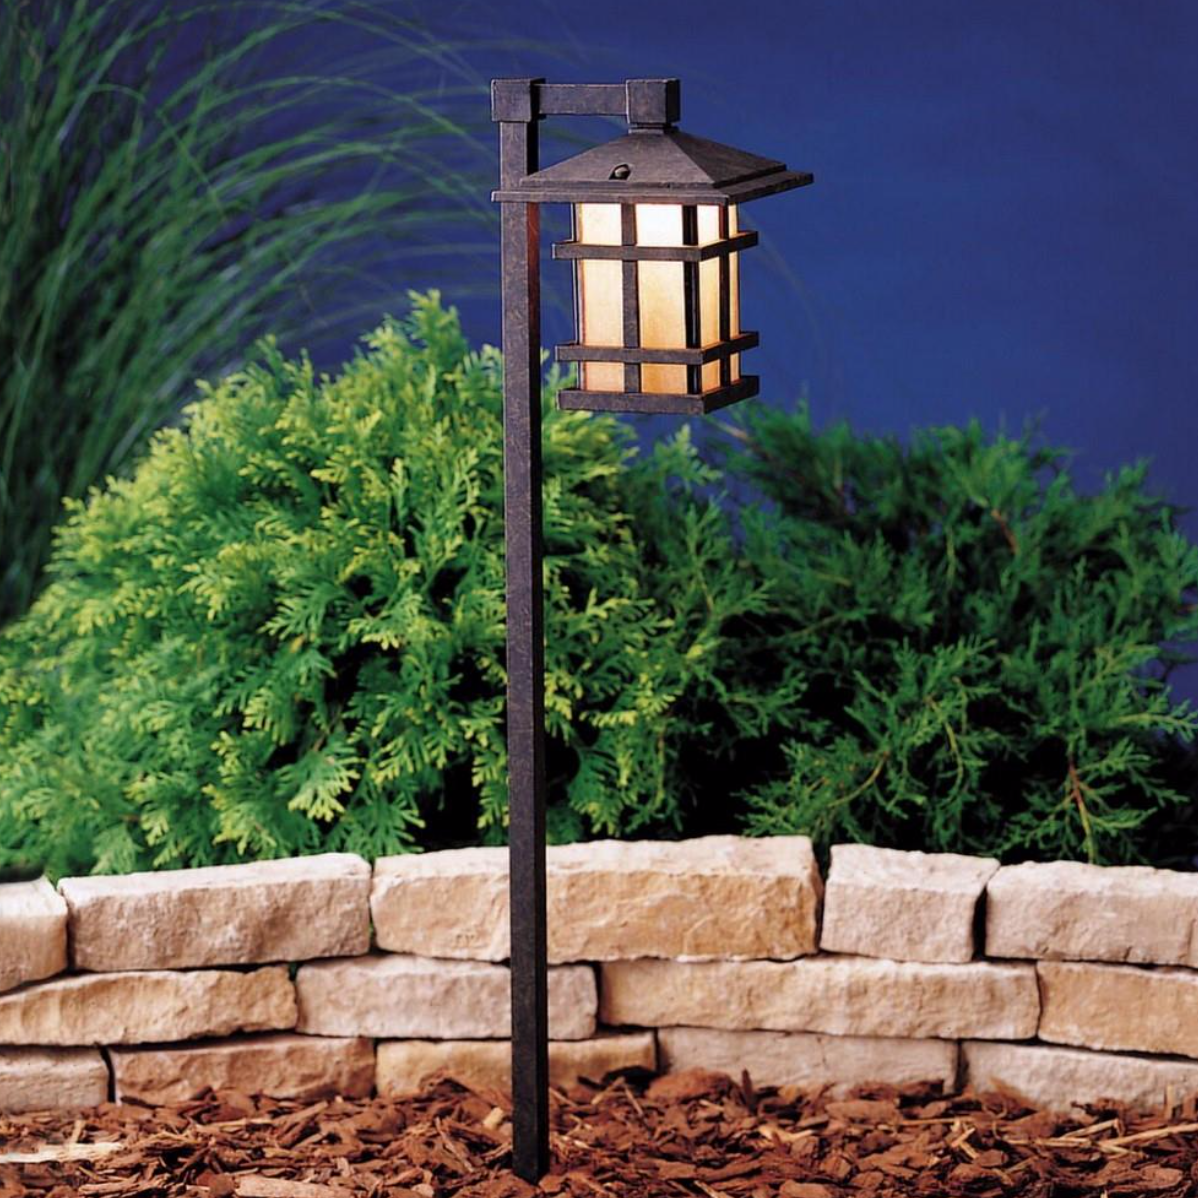 Cross Creek Low Voltage One Light Path Lamp Path Lights Landscape Lighting Garden Path Lighting